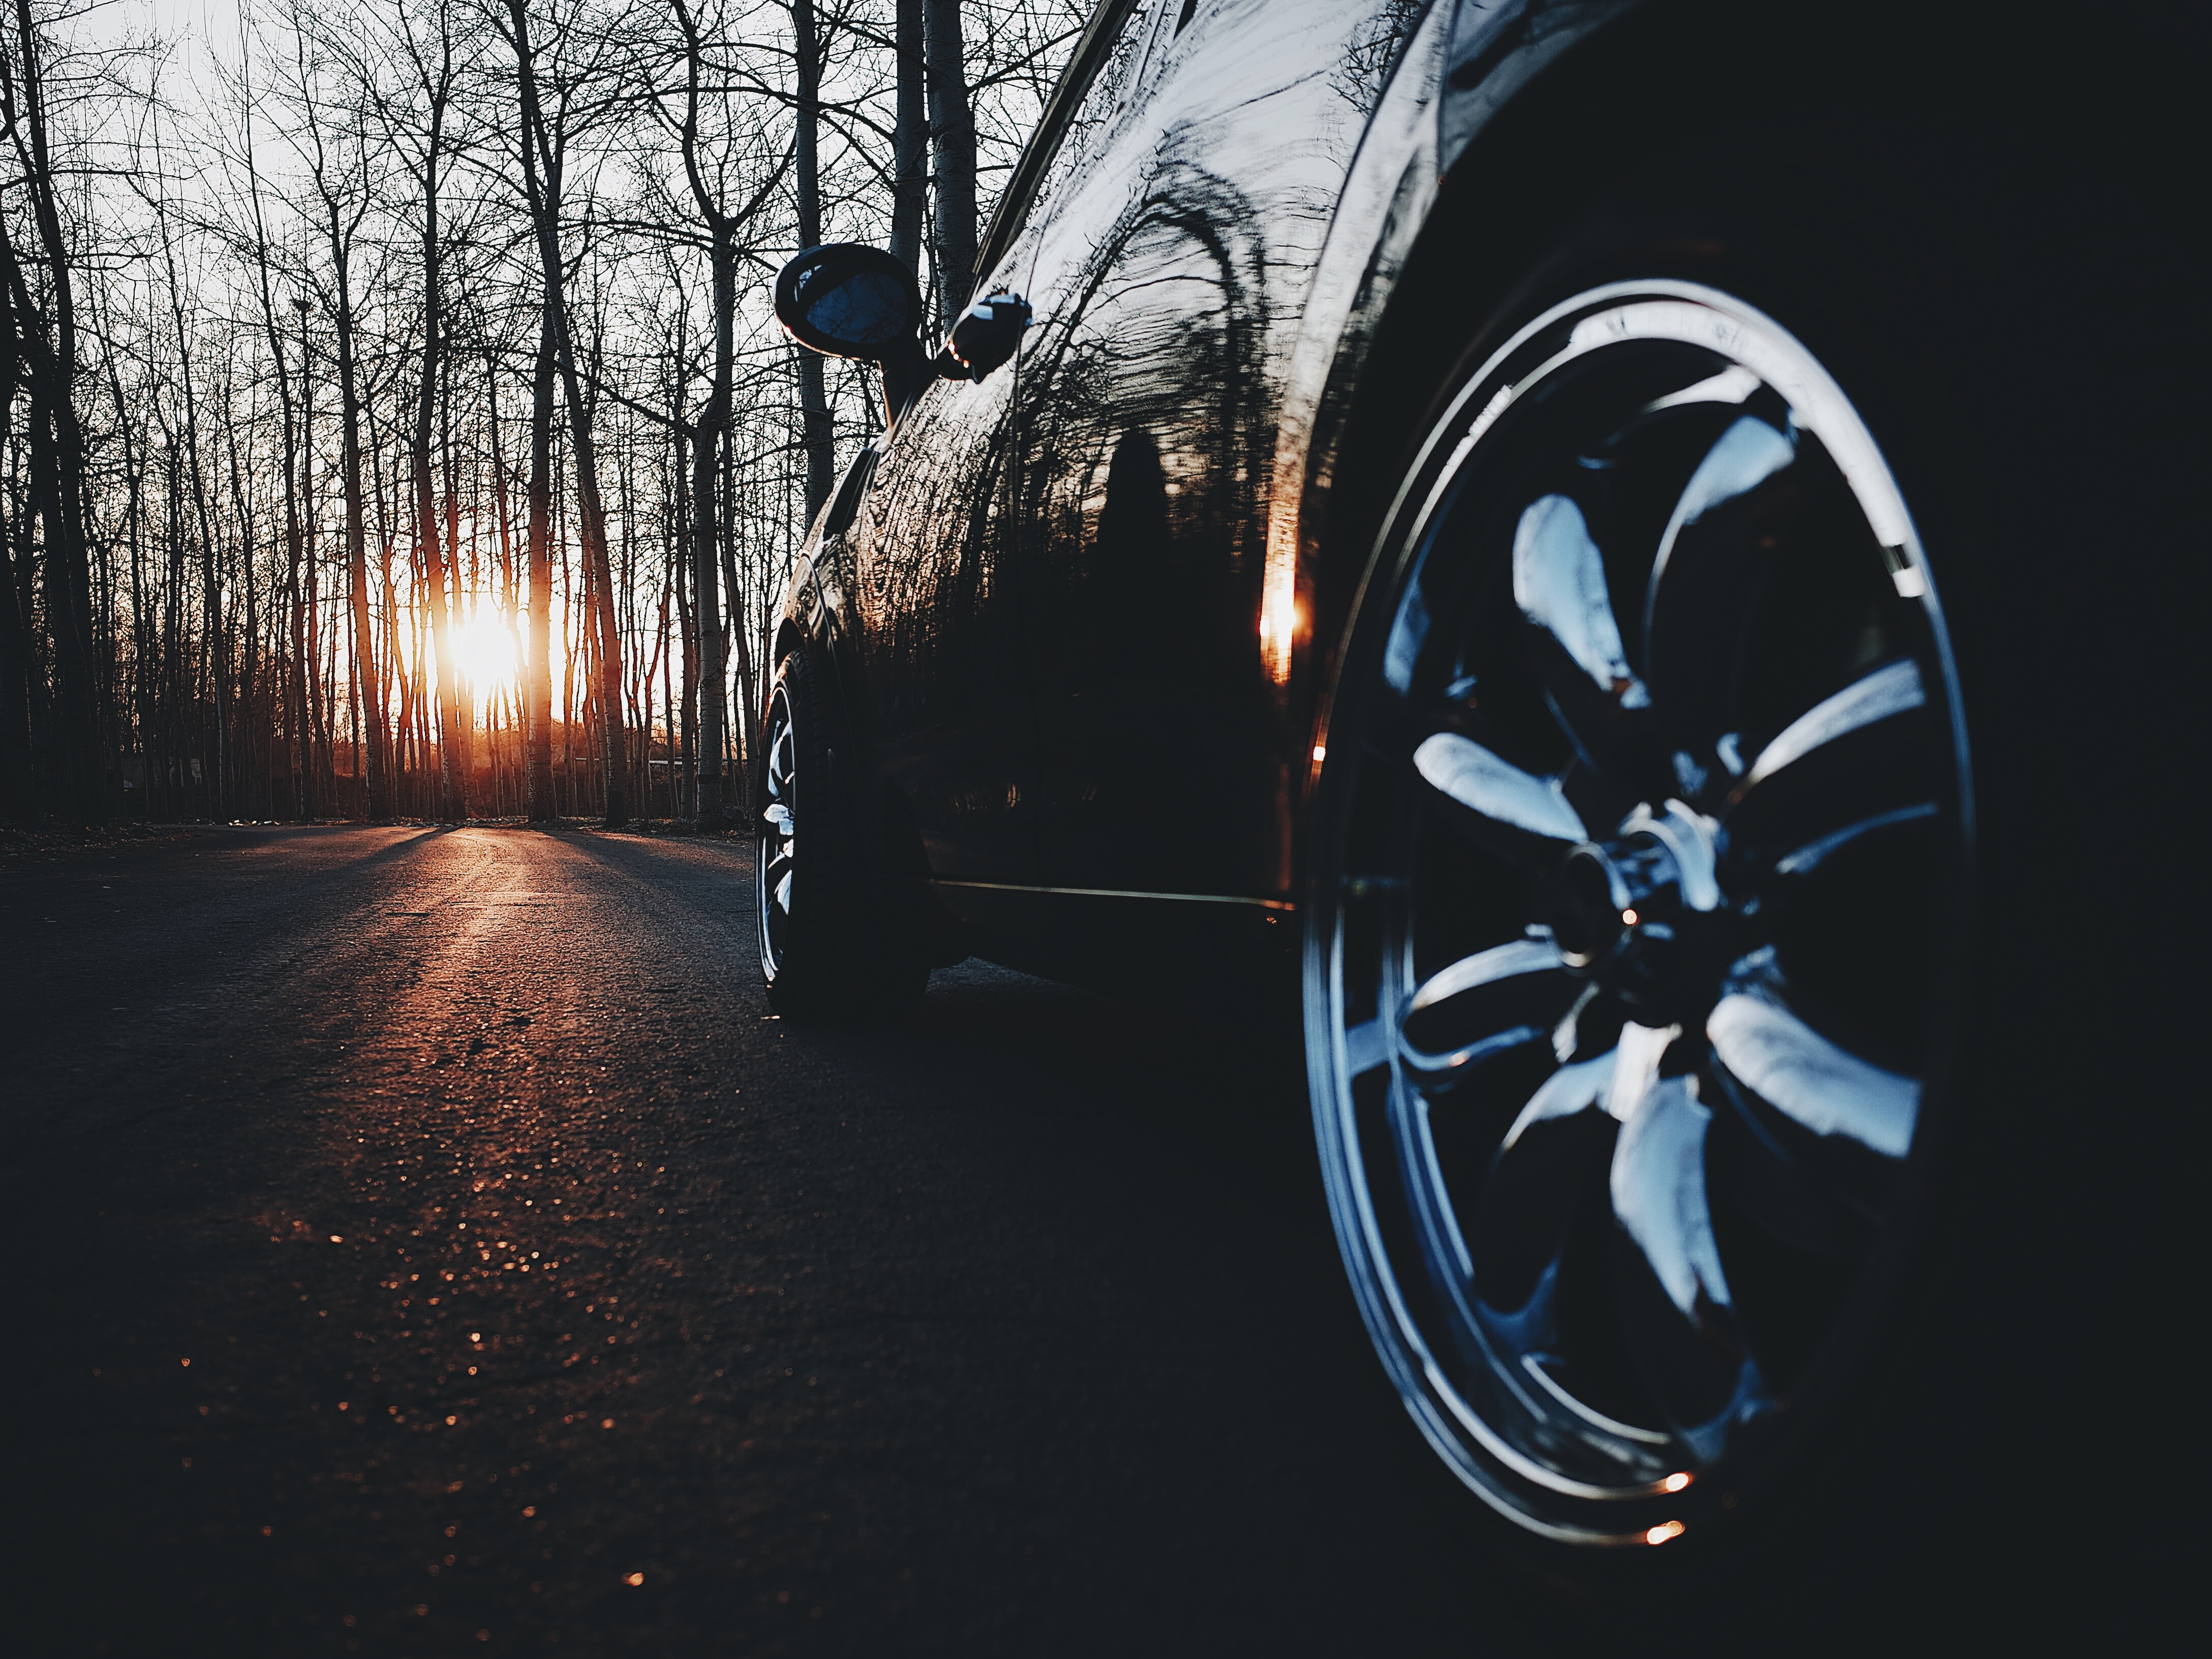 Black car chrome rim on an asphalt road in a leafless forest on sunset